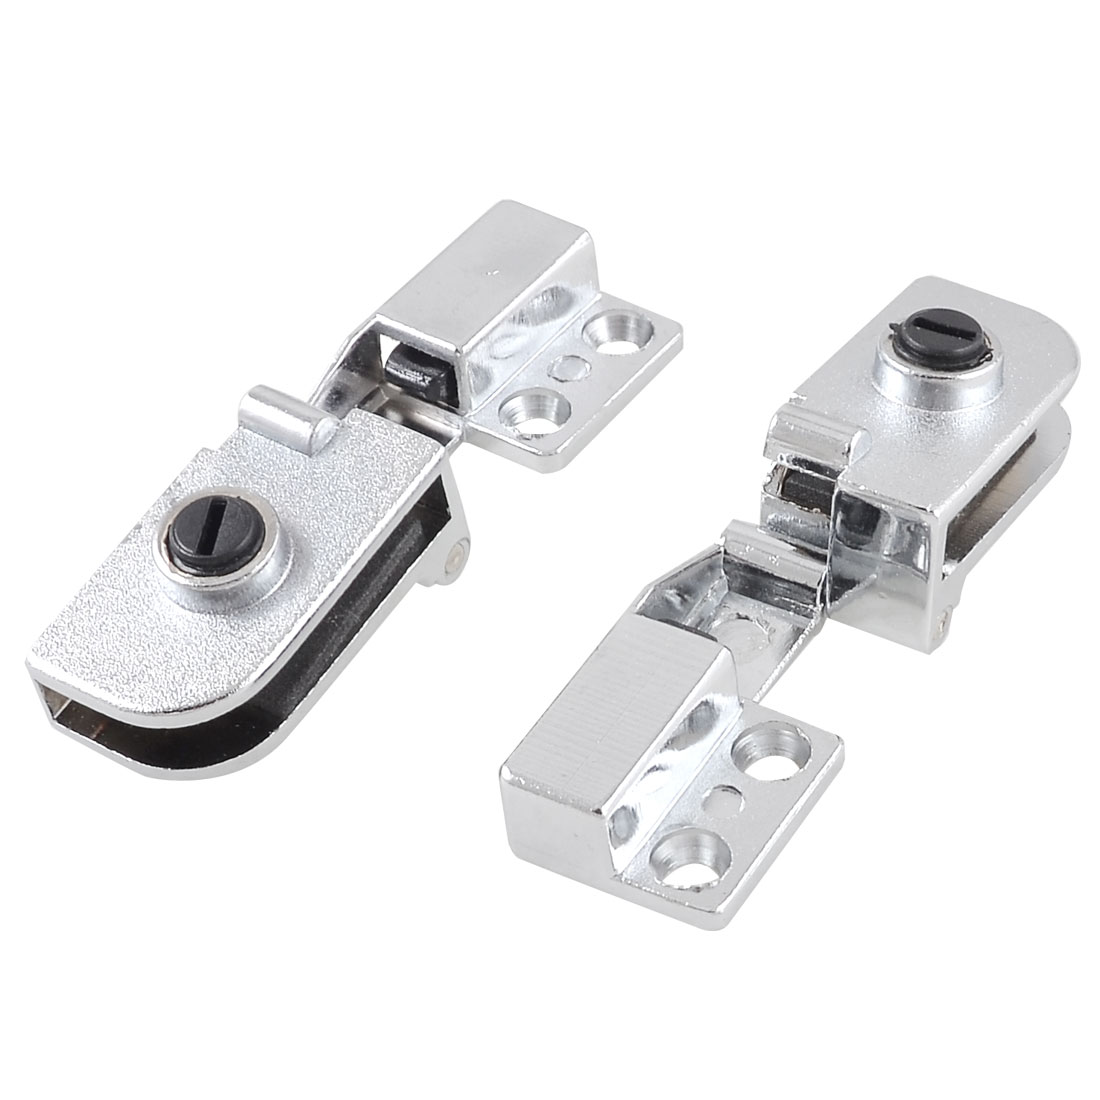 Replacement Metal Door Catch Hinge for 5mm Thickness Glass 2 Pcs